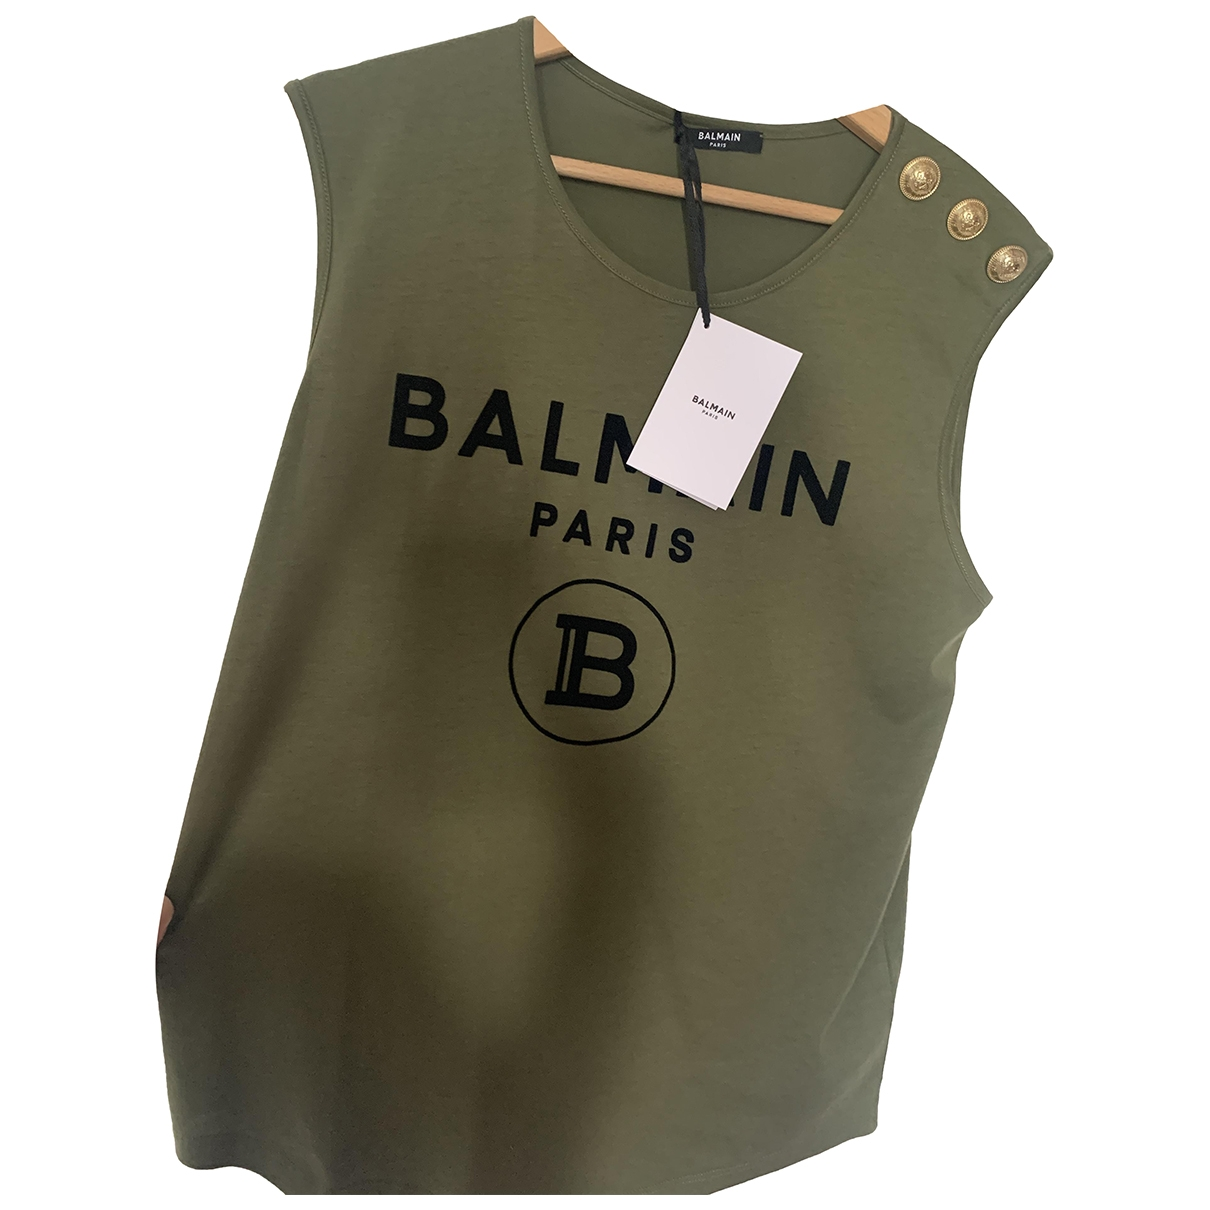 Balmain \N Khaki Cotton  top for Women S International